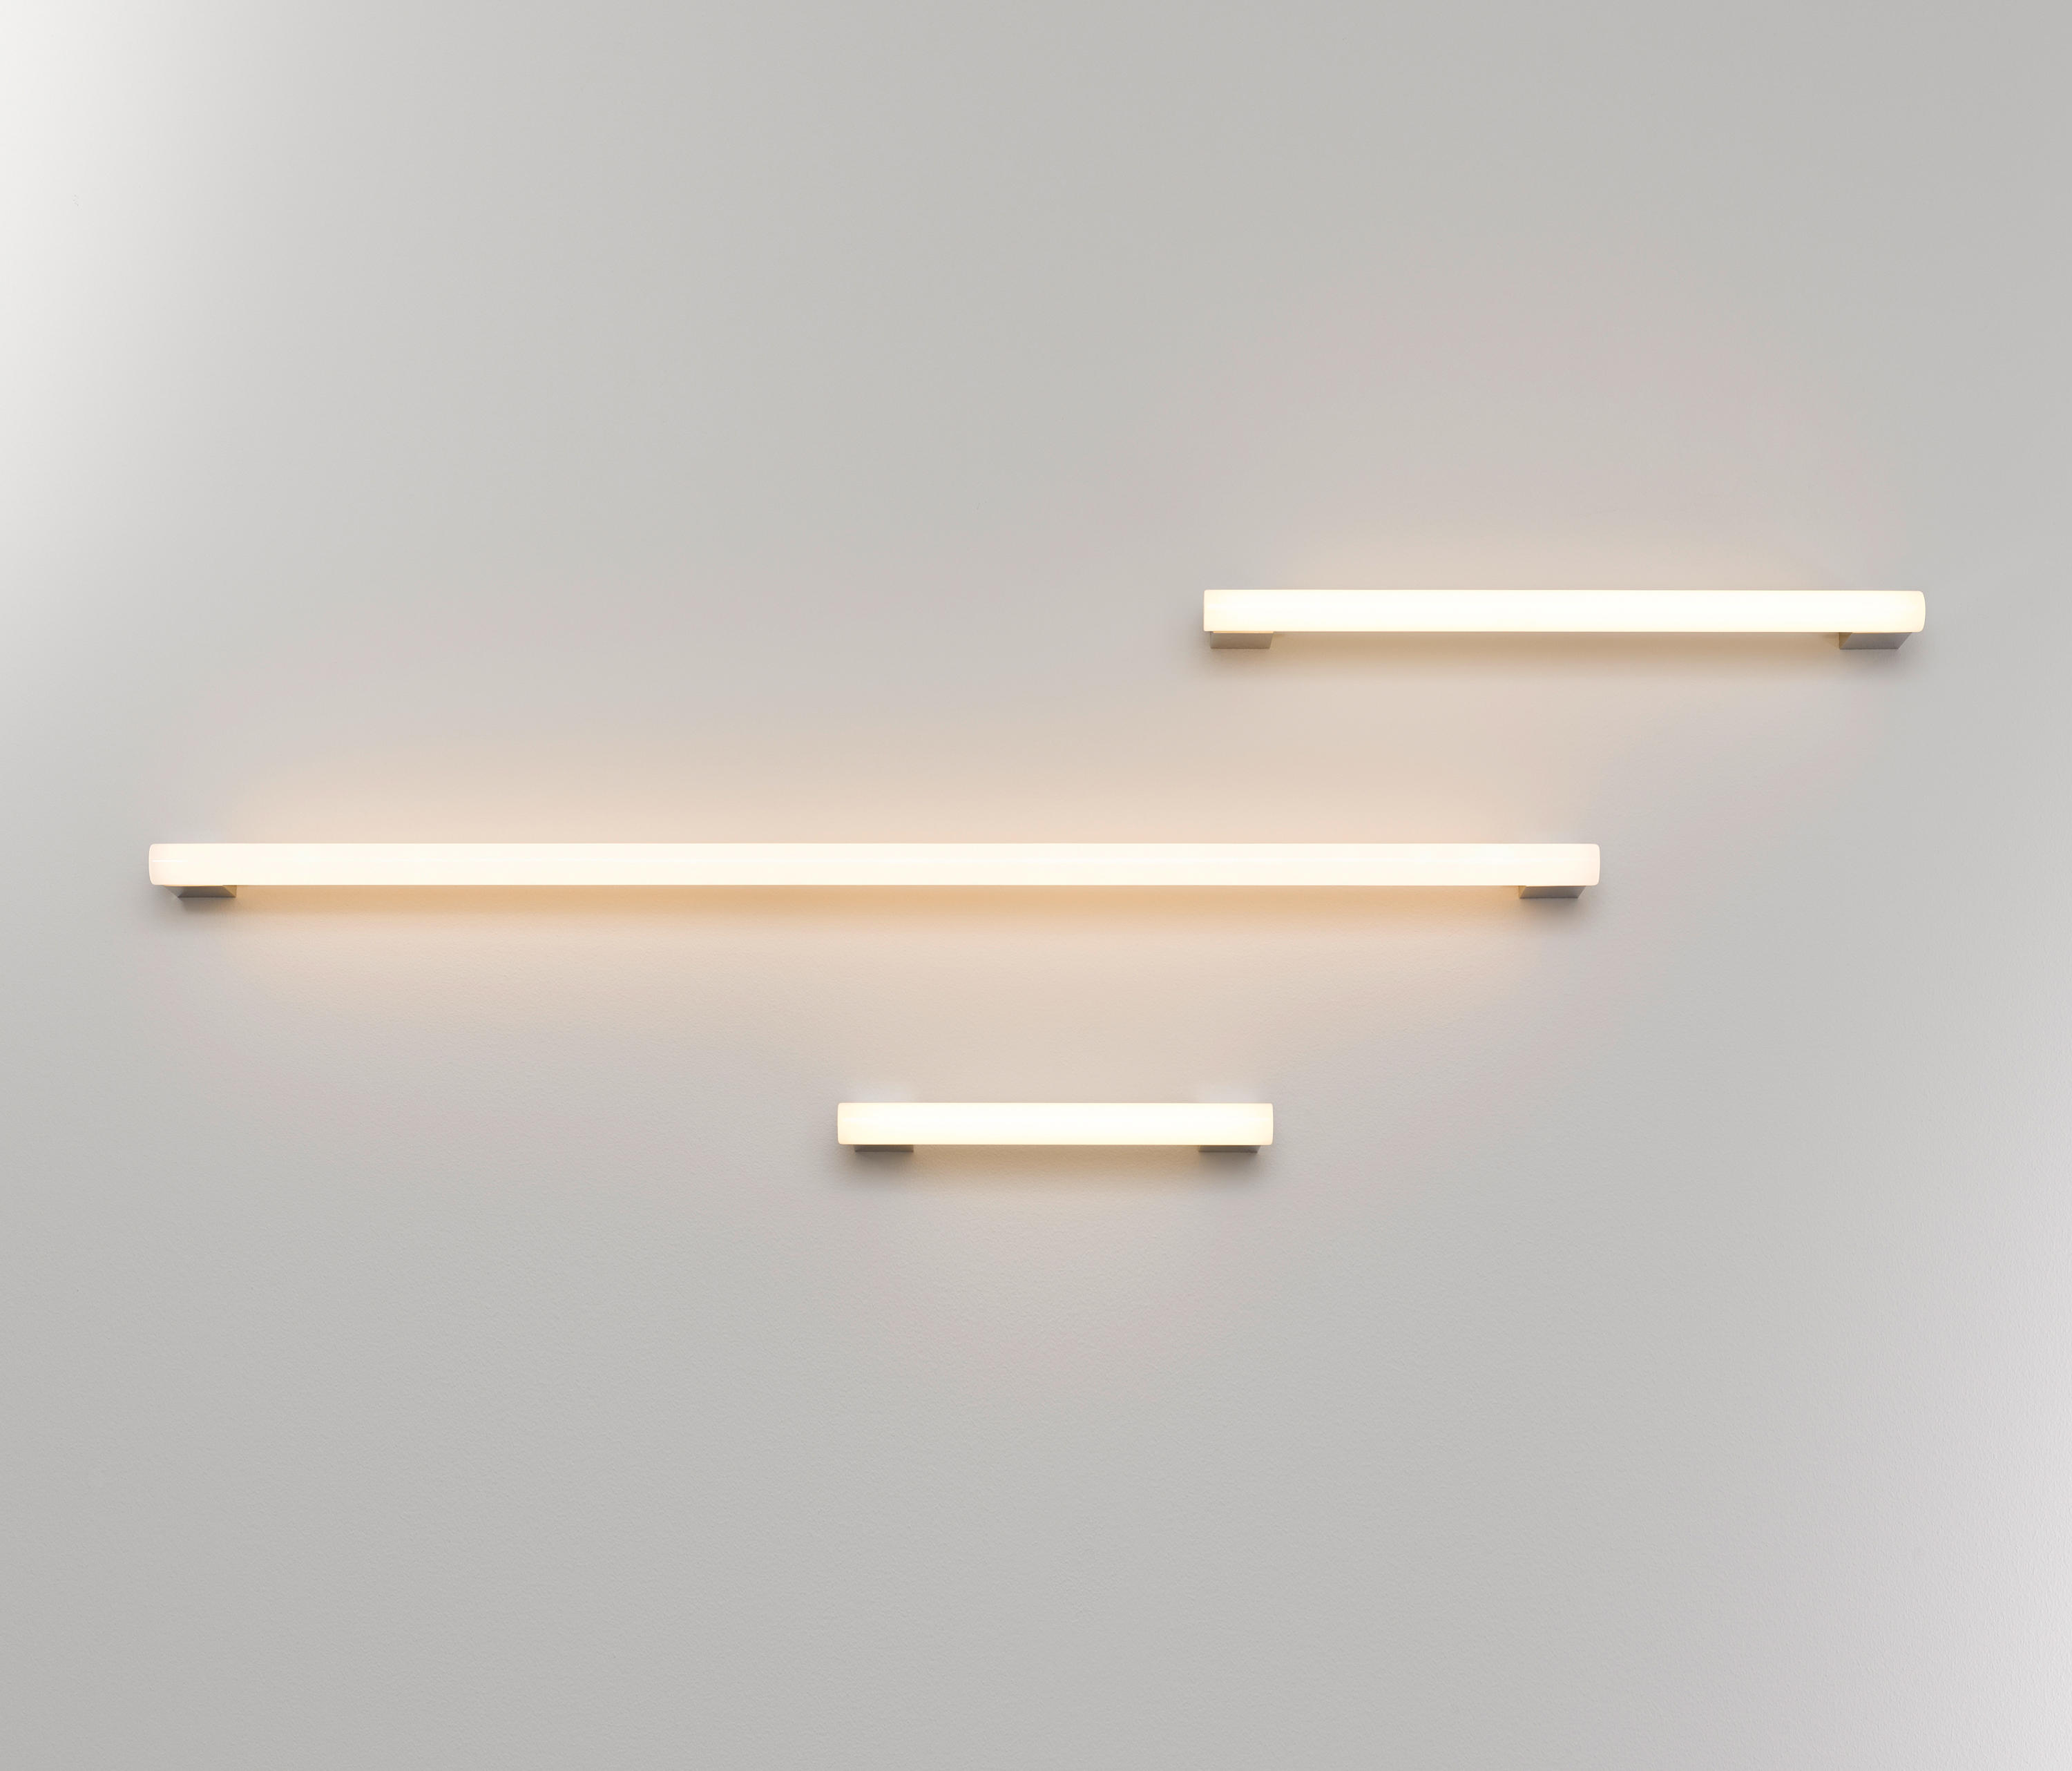 Ceiling Lamp The Sims 4: WALL LIGHT - Wall Lights From KAIA